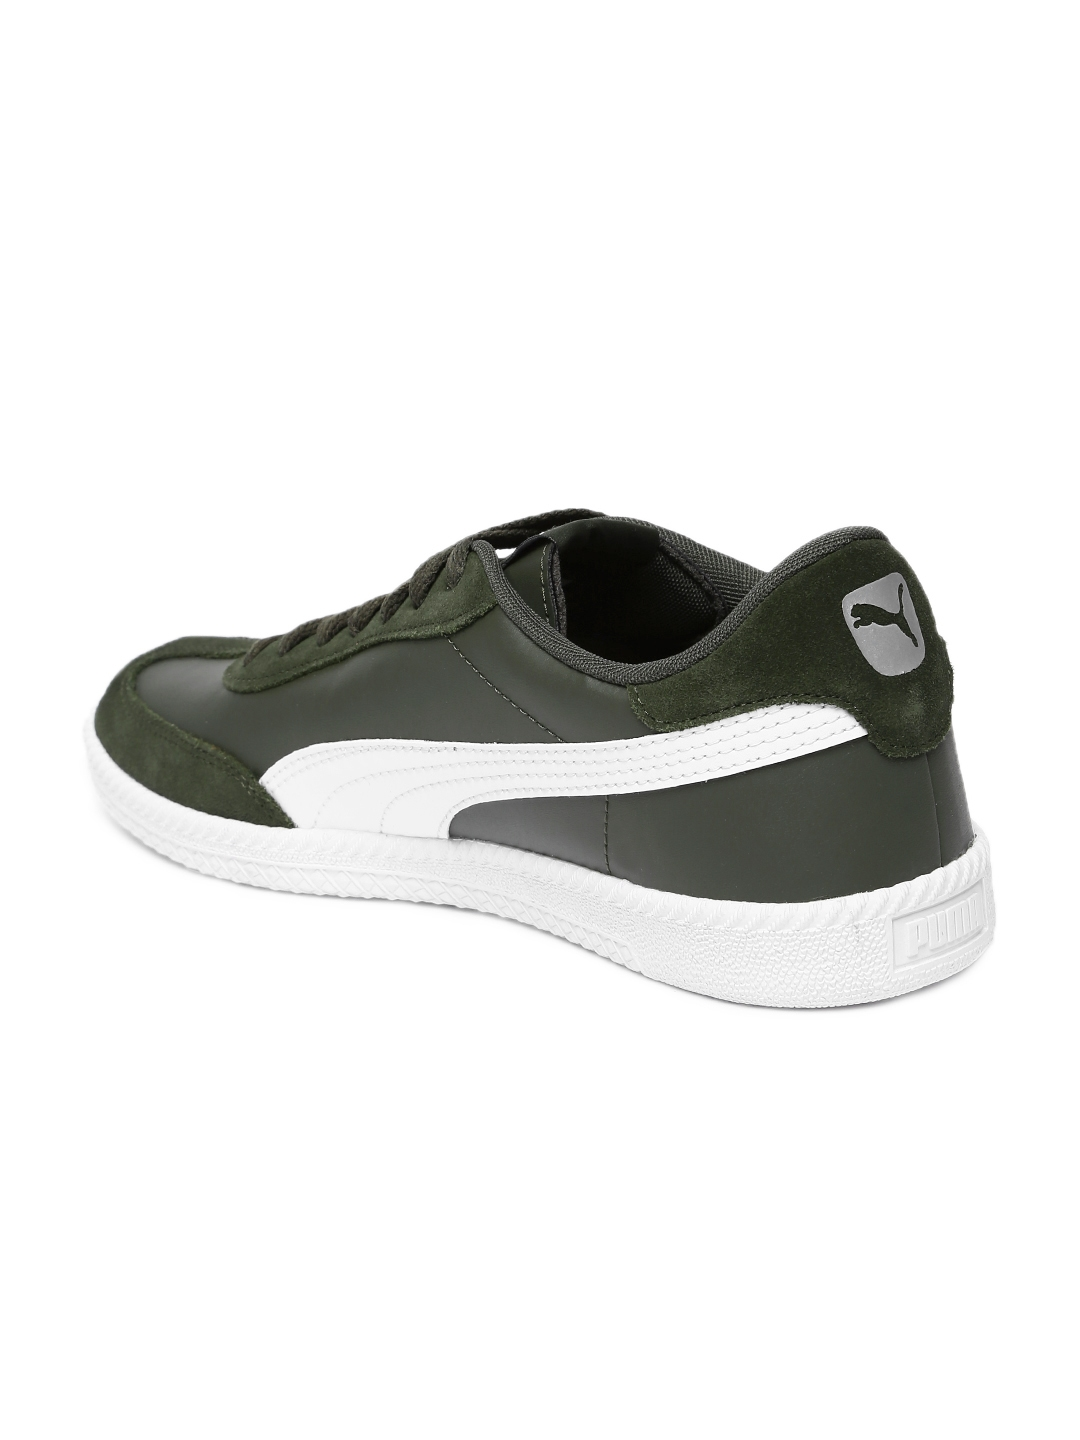 24a744b5ba4 Buy Puma Men Olive Green Astro Cup SL Sneakers - Casual Shoes for ...